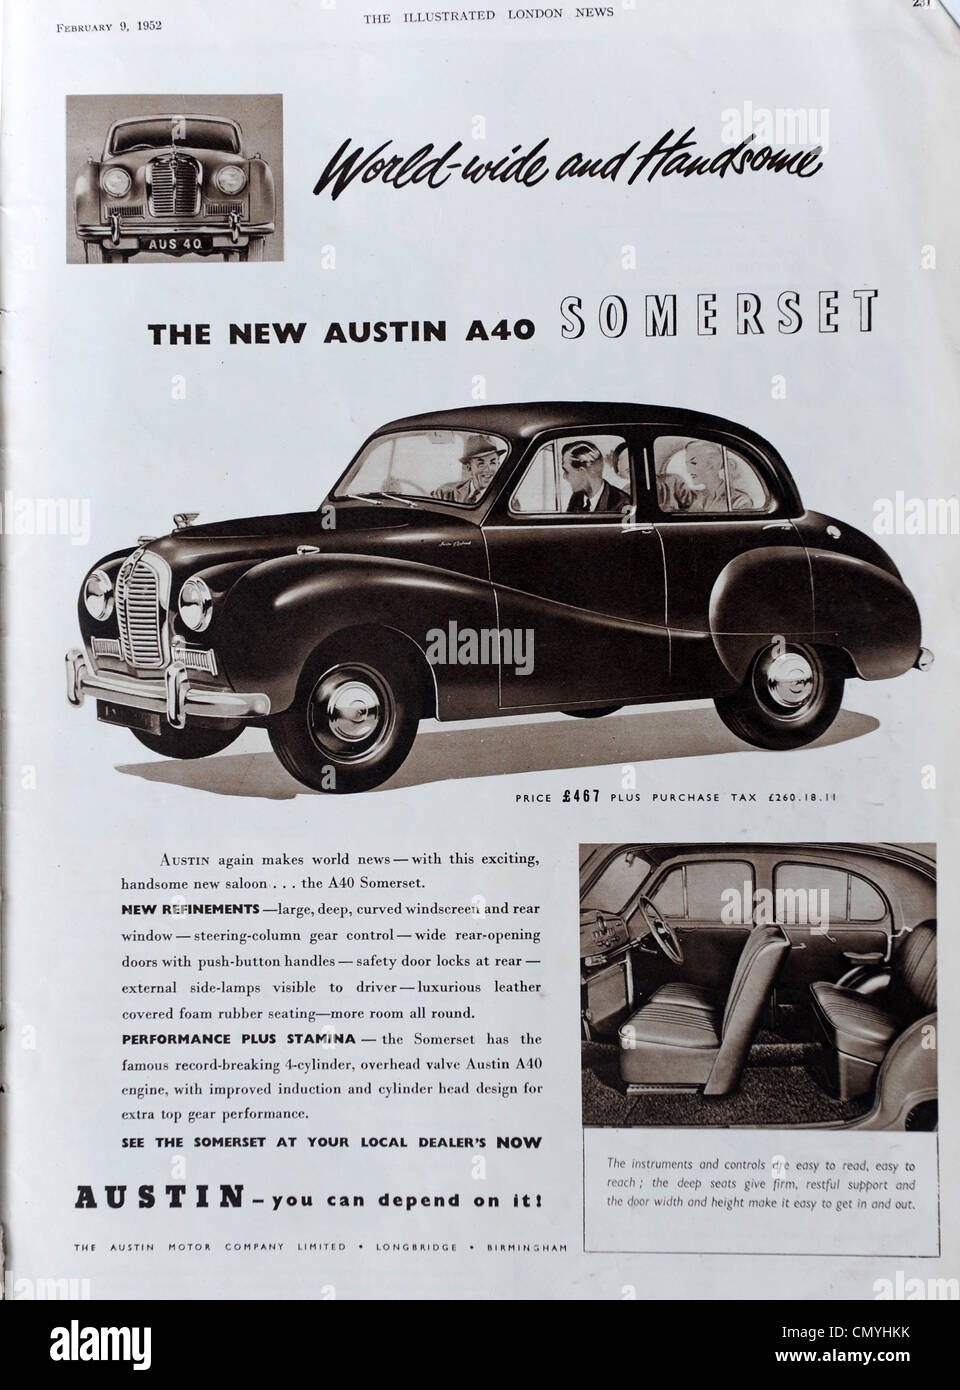 Austin A40 car advert in The Illustrated London News 23/2/52 - Stock Image